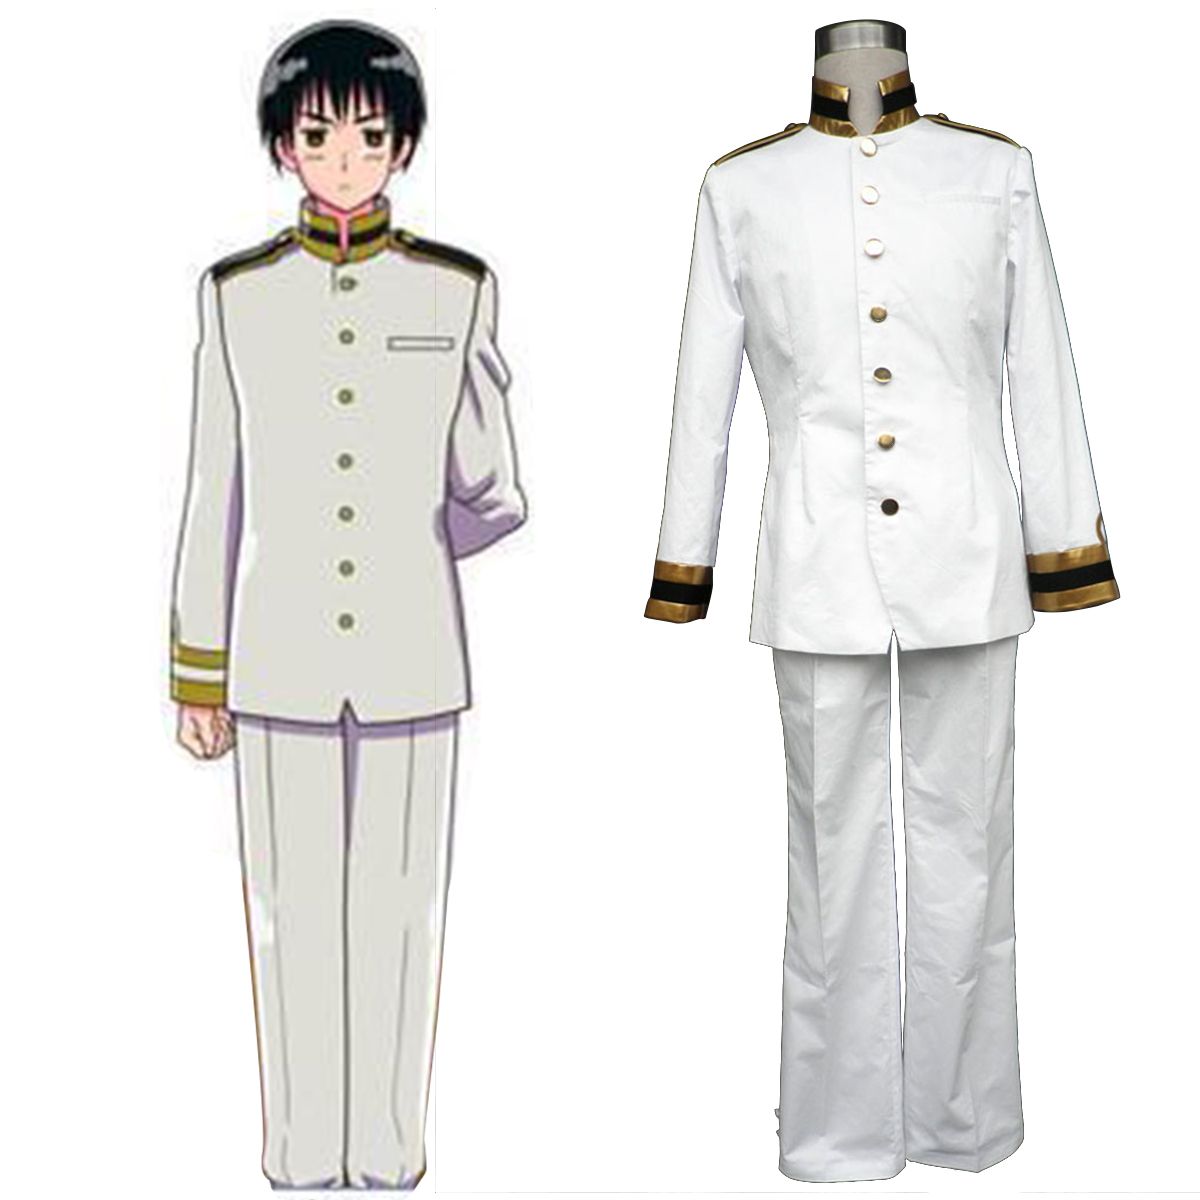 Axis Powers Hetalia Japan Honda Kiku 1 Anime Cosplay Costumes Outfit